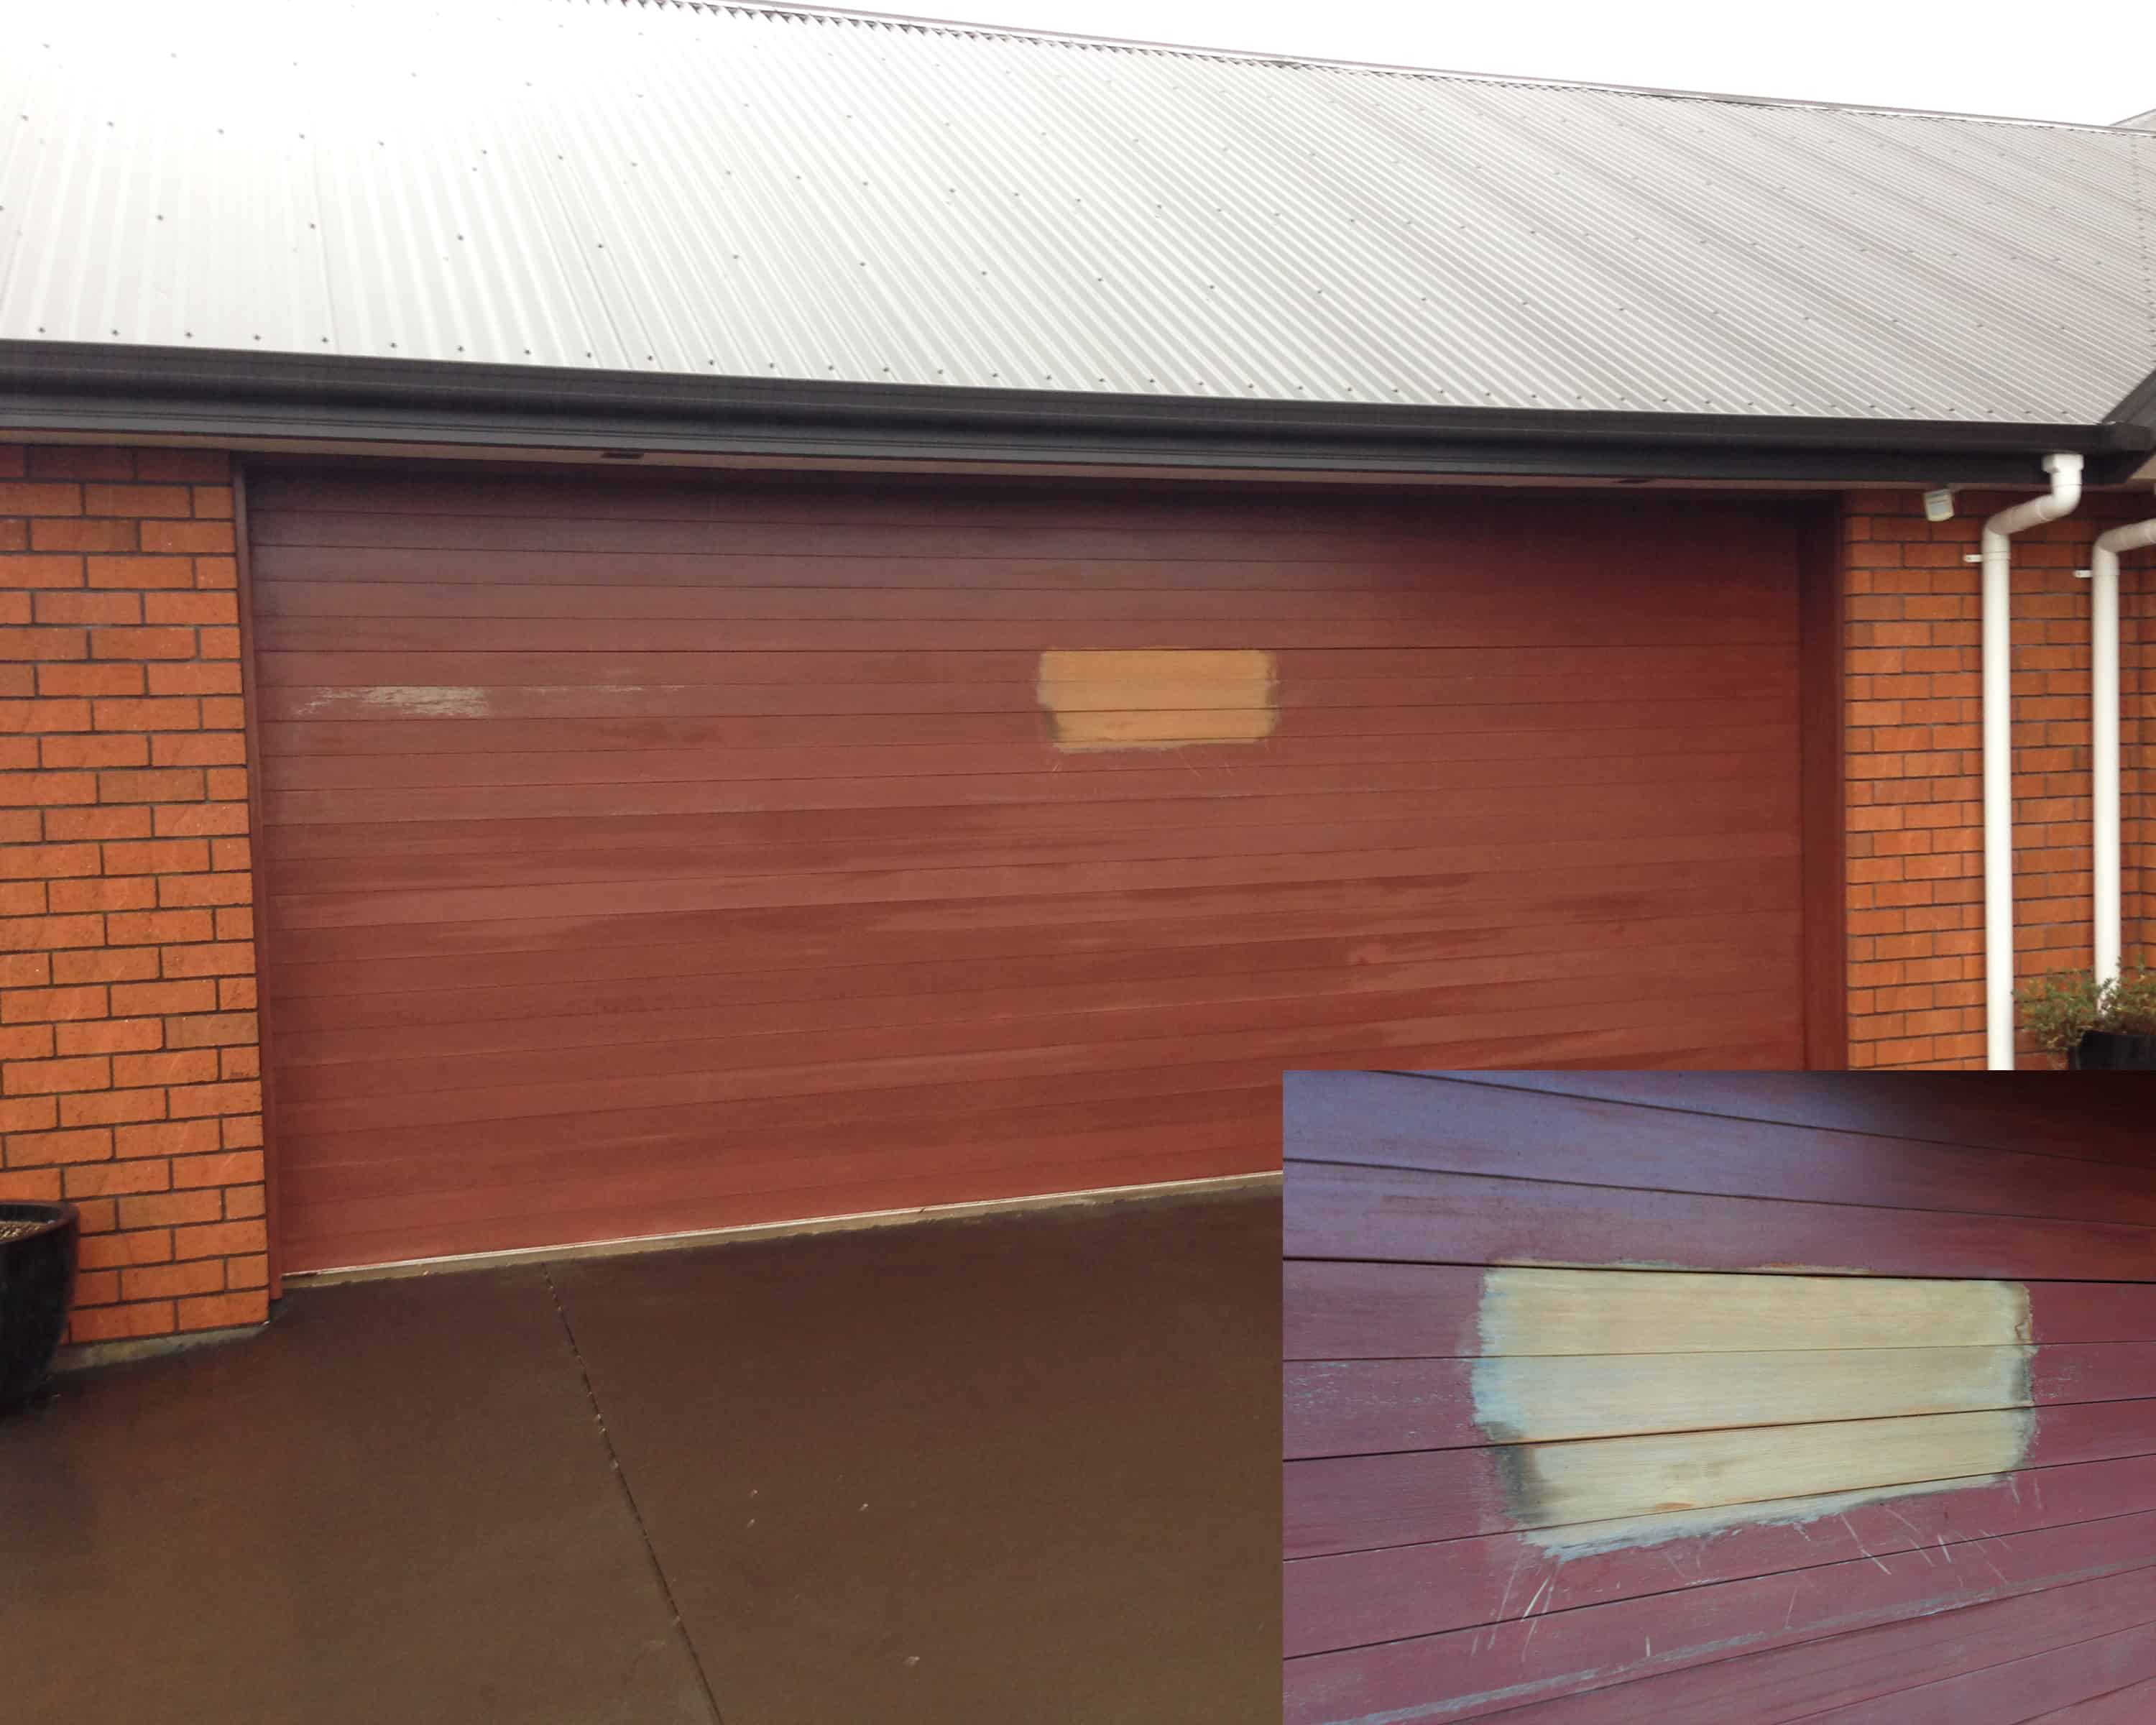 i wood l h doors in garage cedar door c finest handballtunisie overhead org model